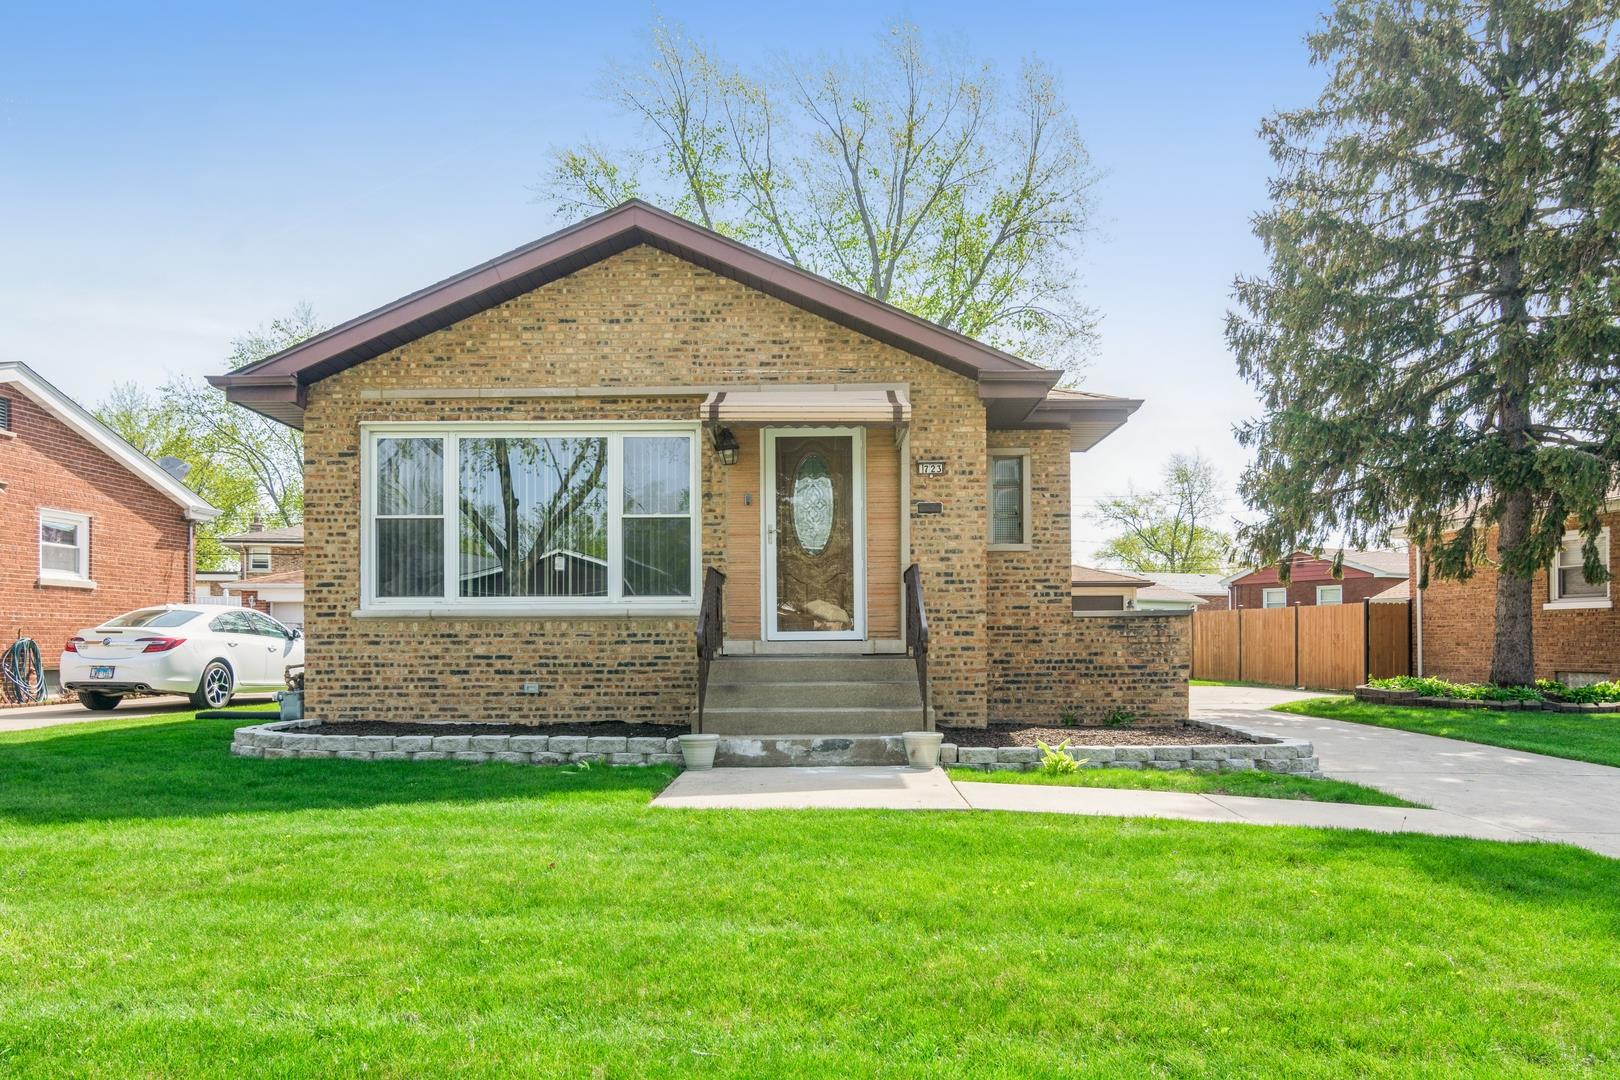 723 Willow Drive, Chicago Heights, IL 60411 - #: 11073886